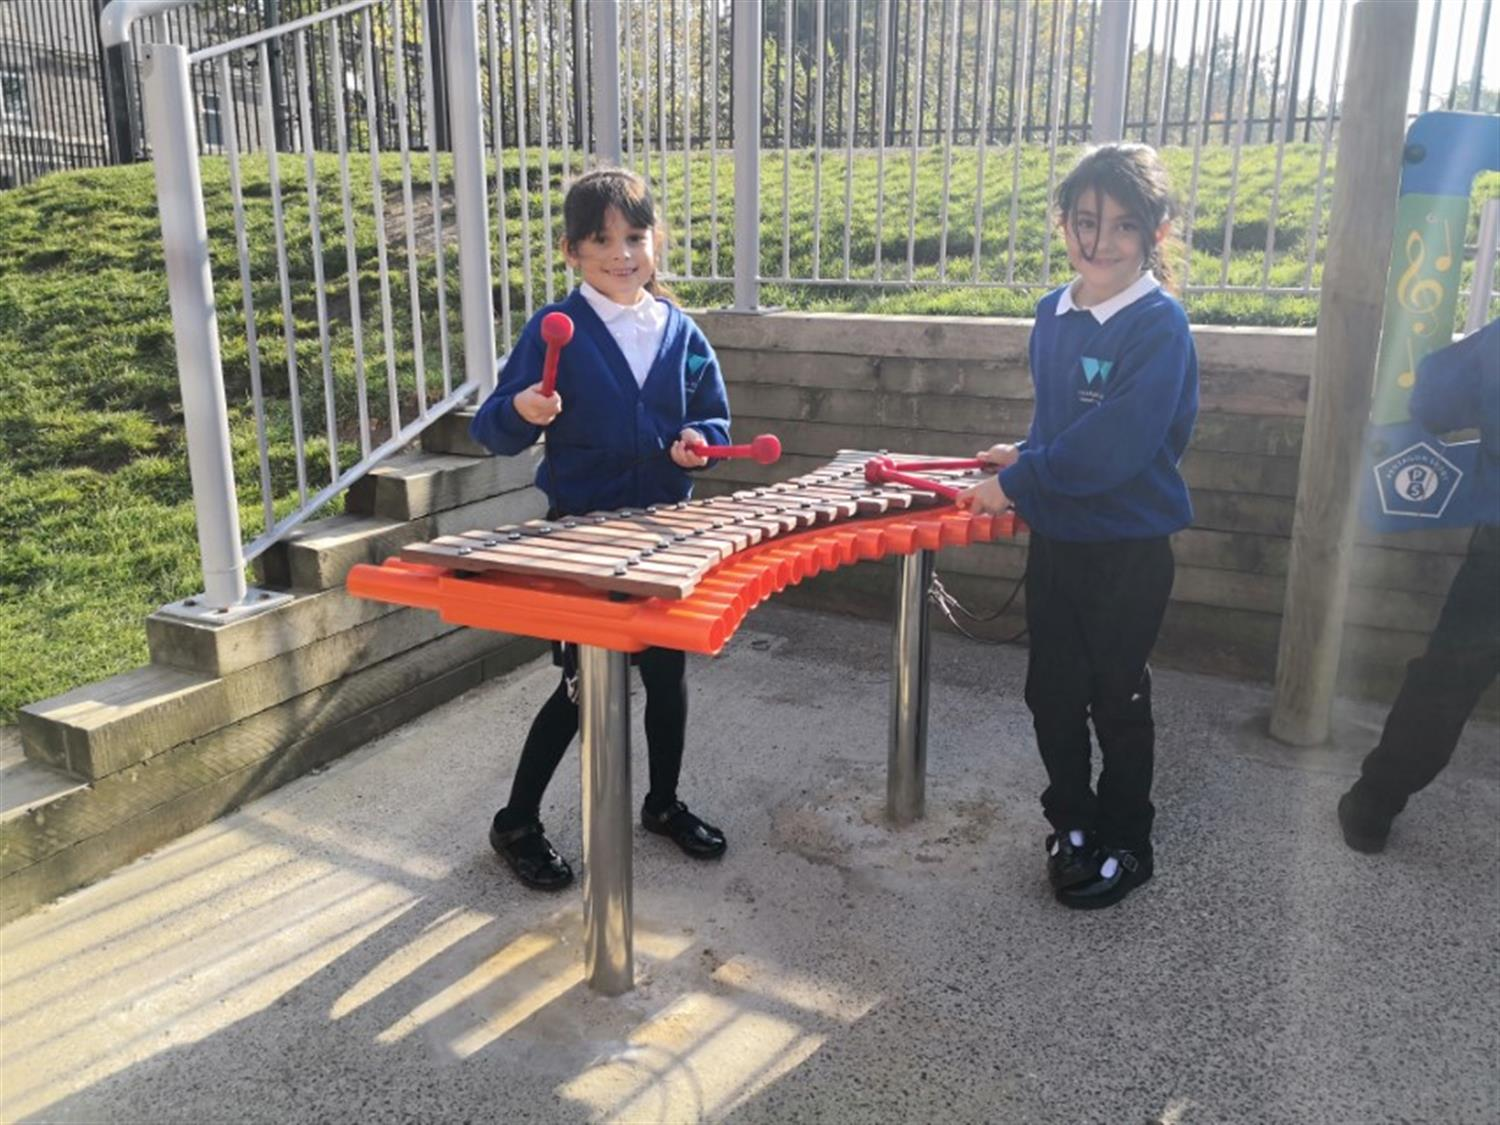 Outdoor Musical Instruments For Primary School Playgrounds